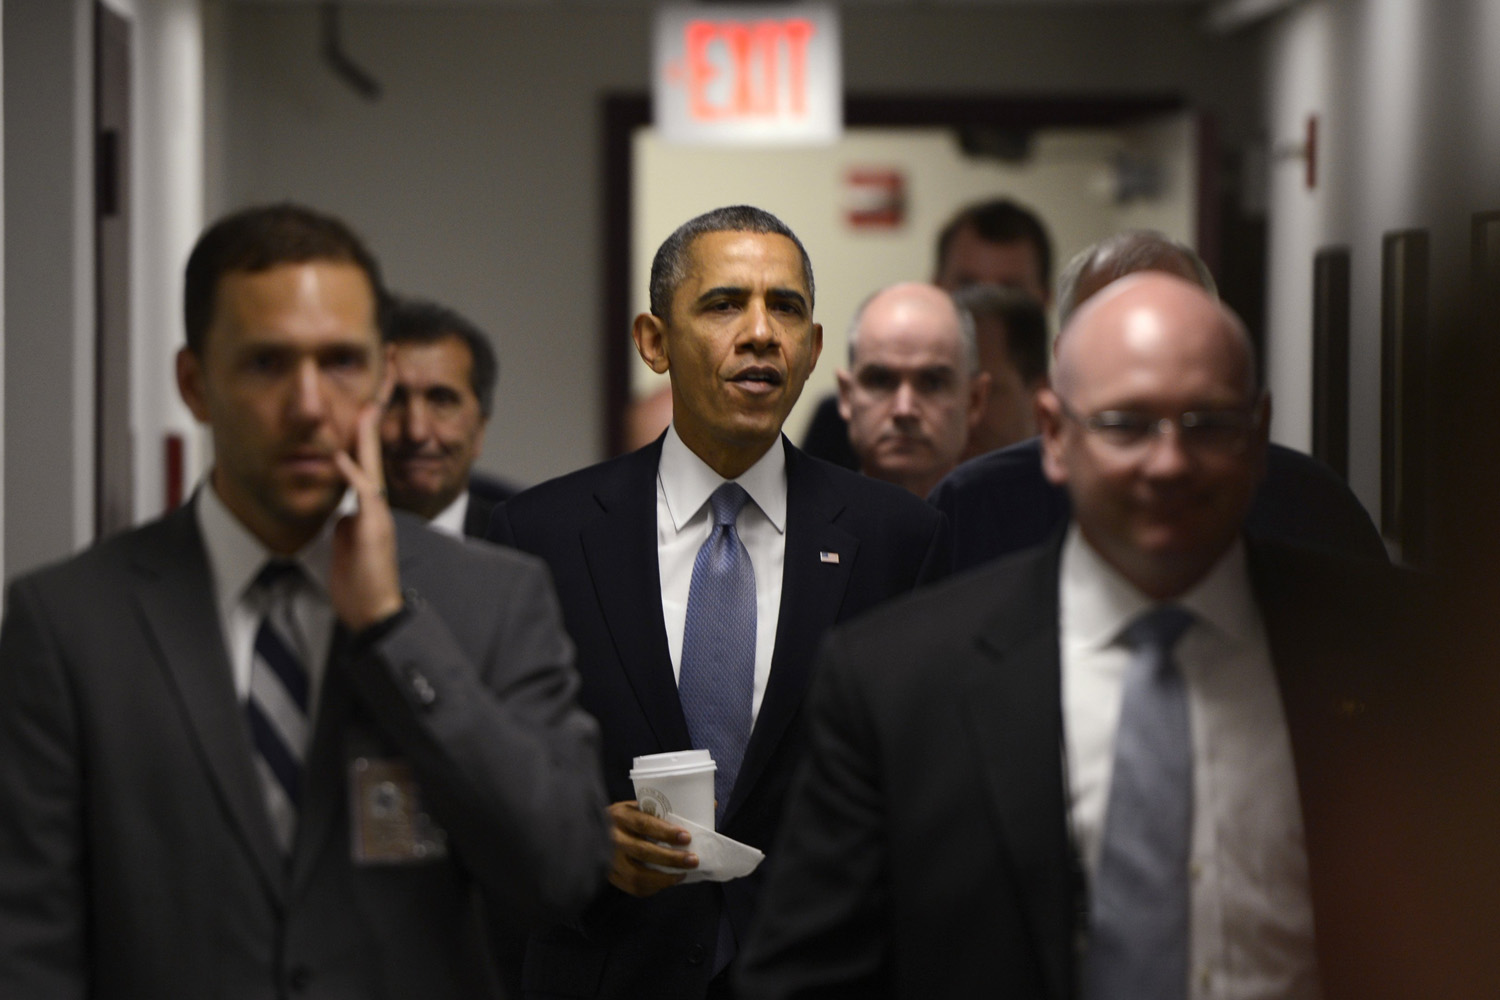 Oct. 7, 2013. U.S. President Barack Obama walks to a briefing to deliver remarks on the Government Shutdown at FEMA's National Responce Coordination Center in Washington.